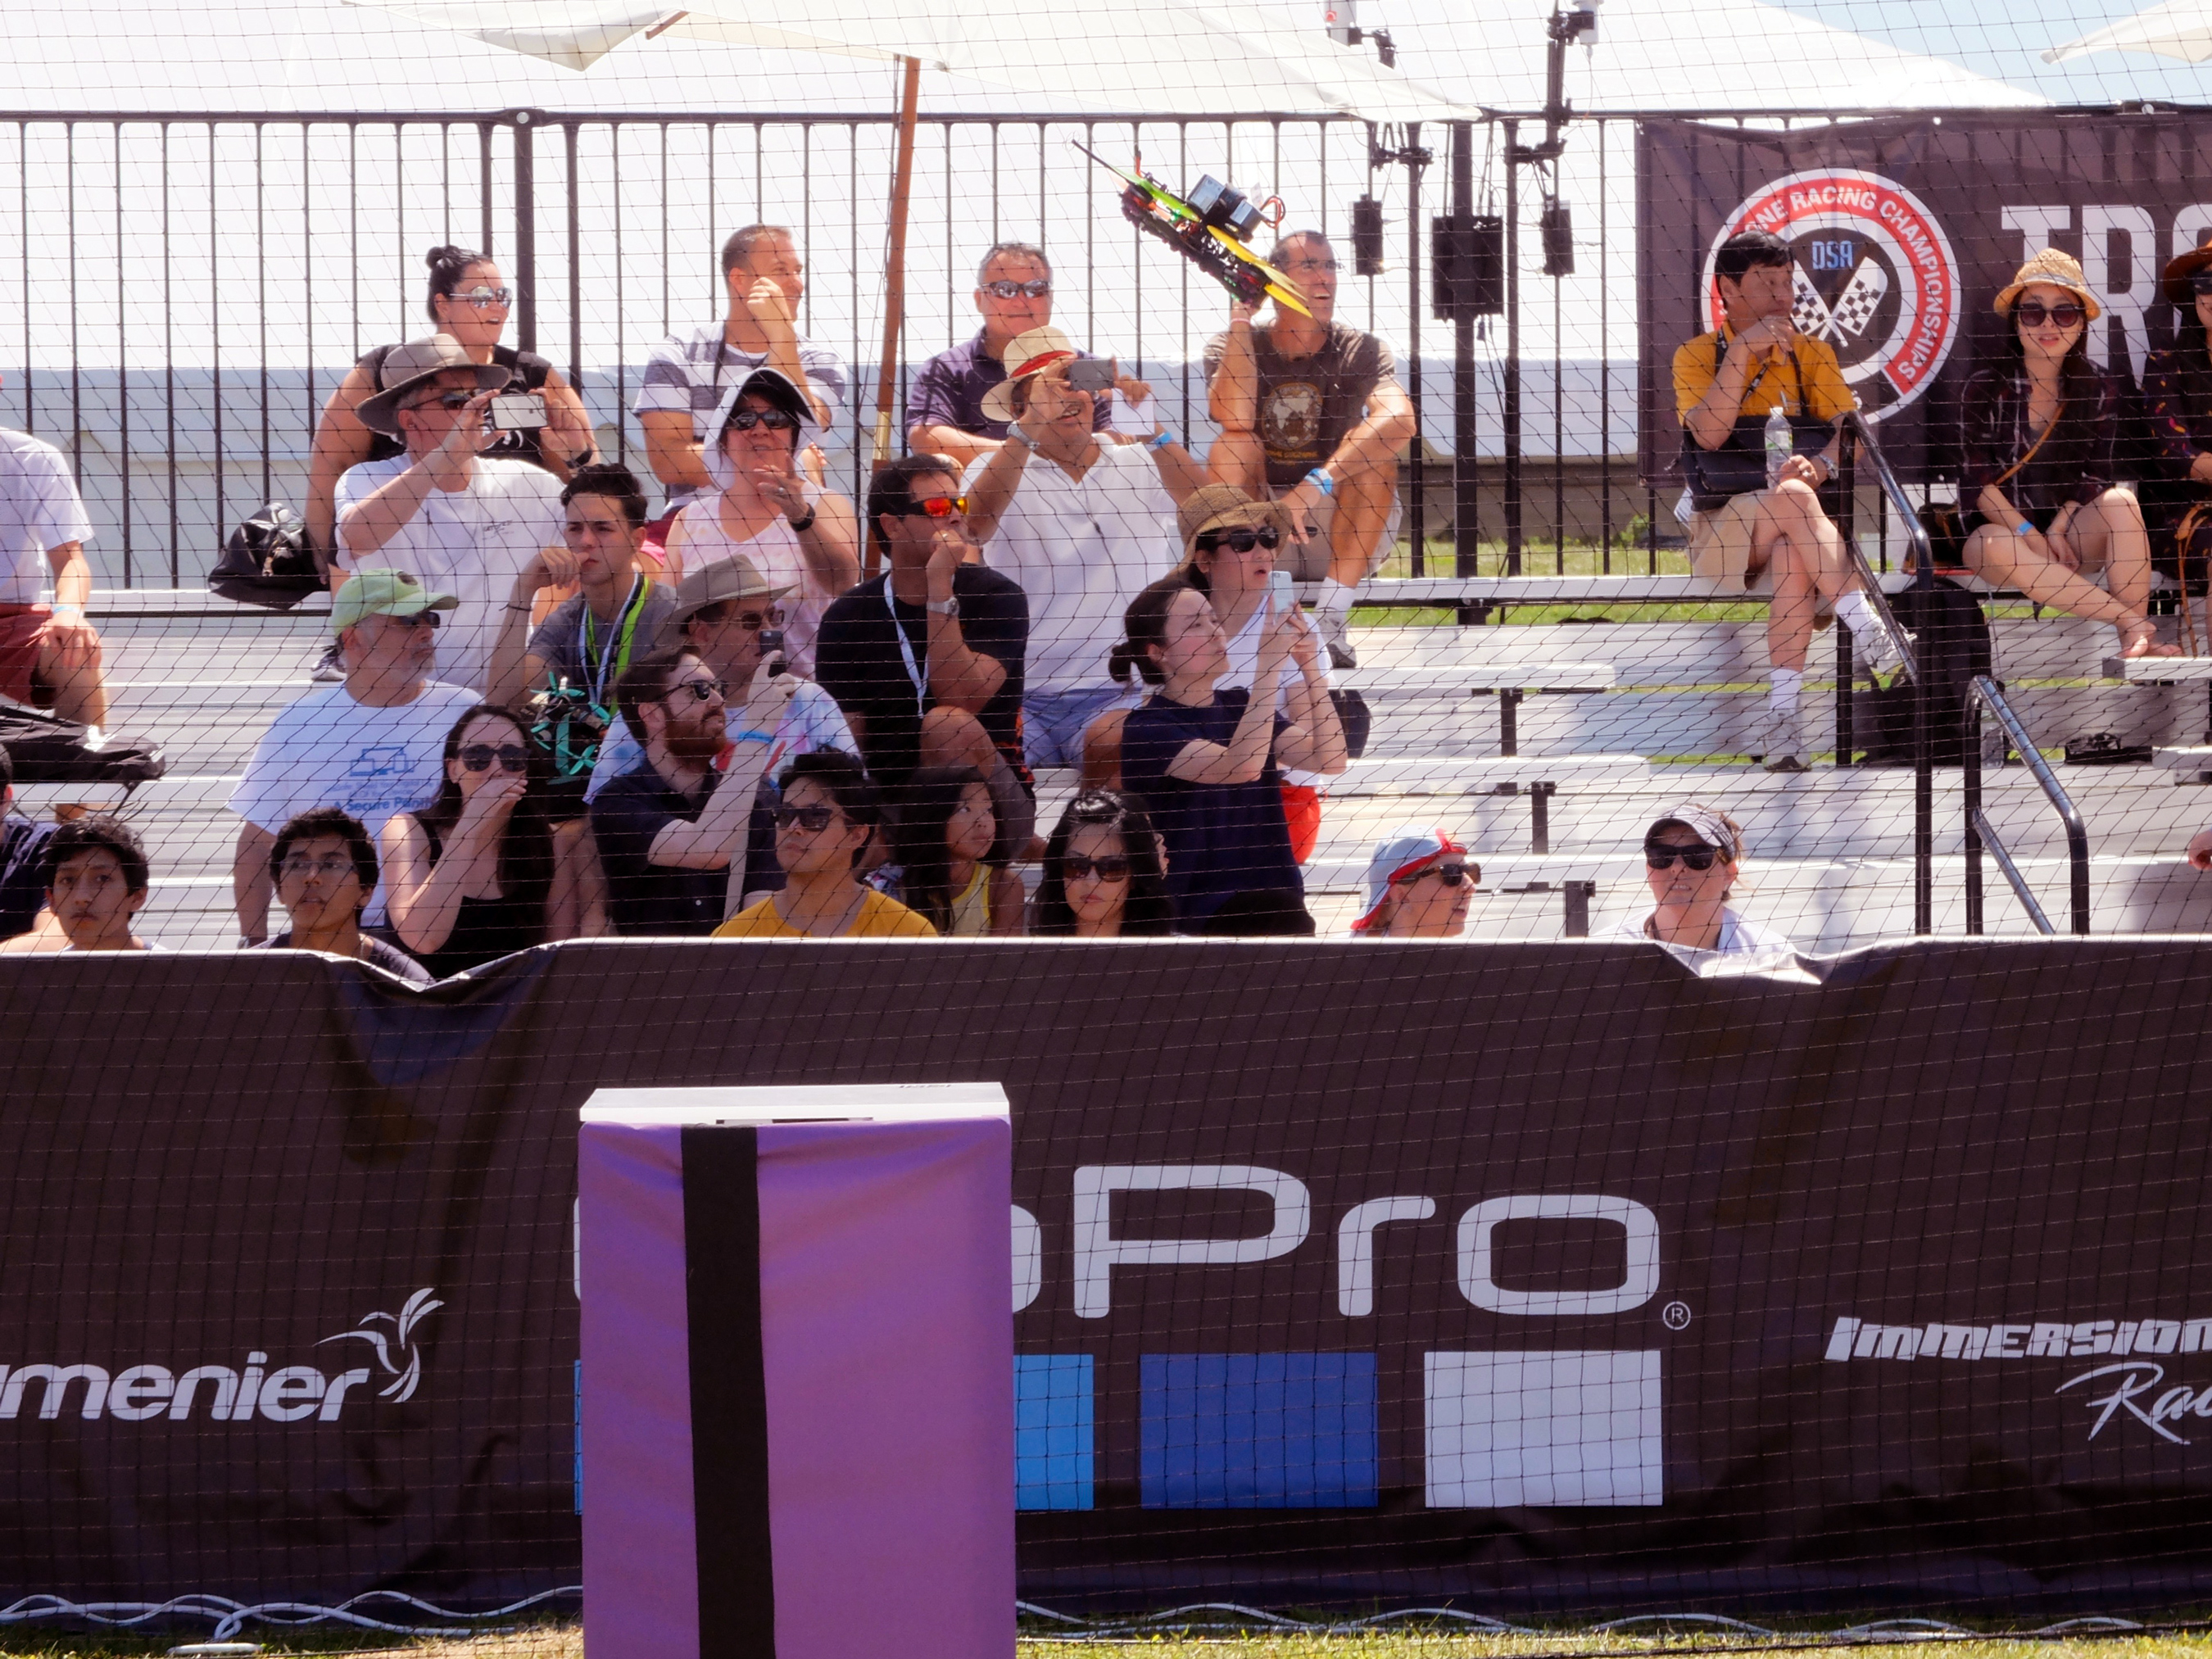 drone racing at the 2016 drone nationals